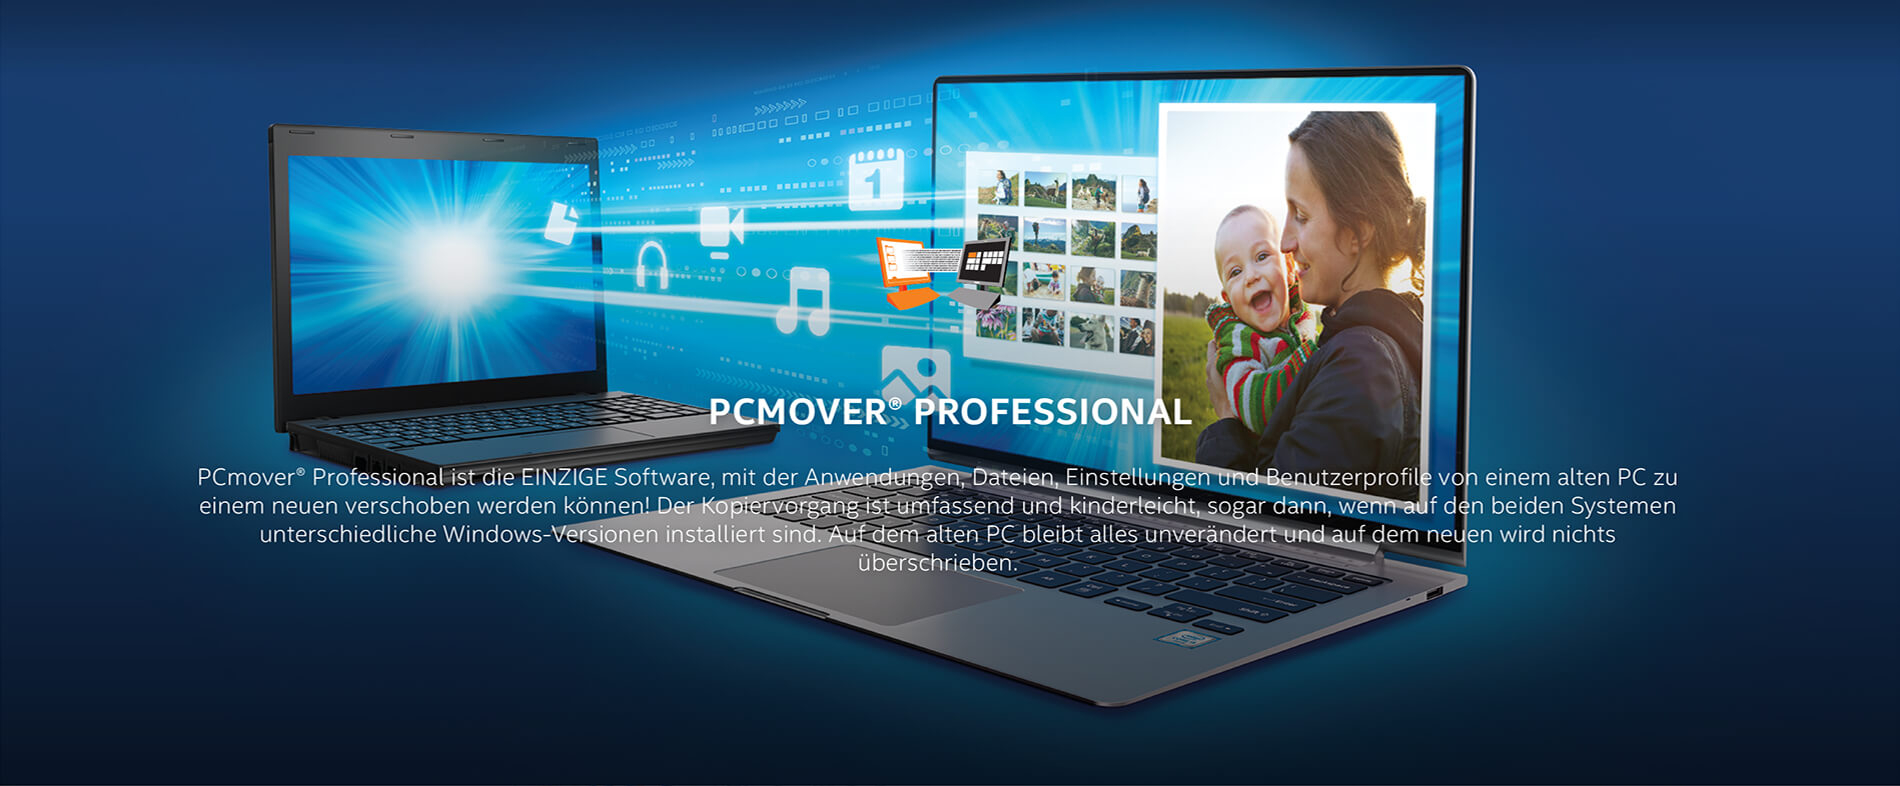 PCmover Professional